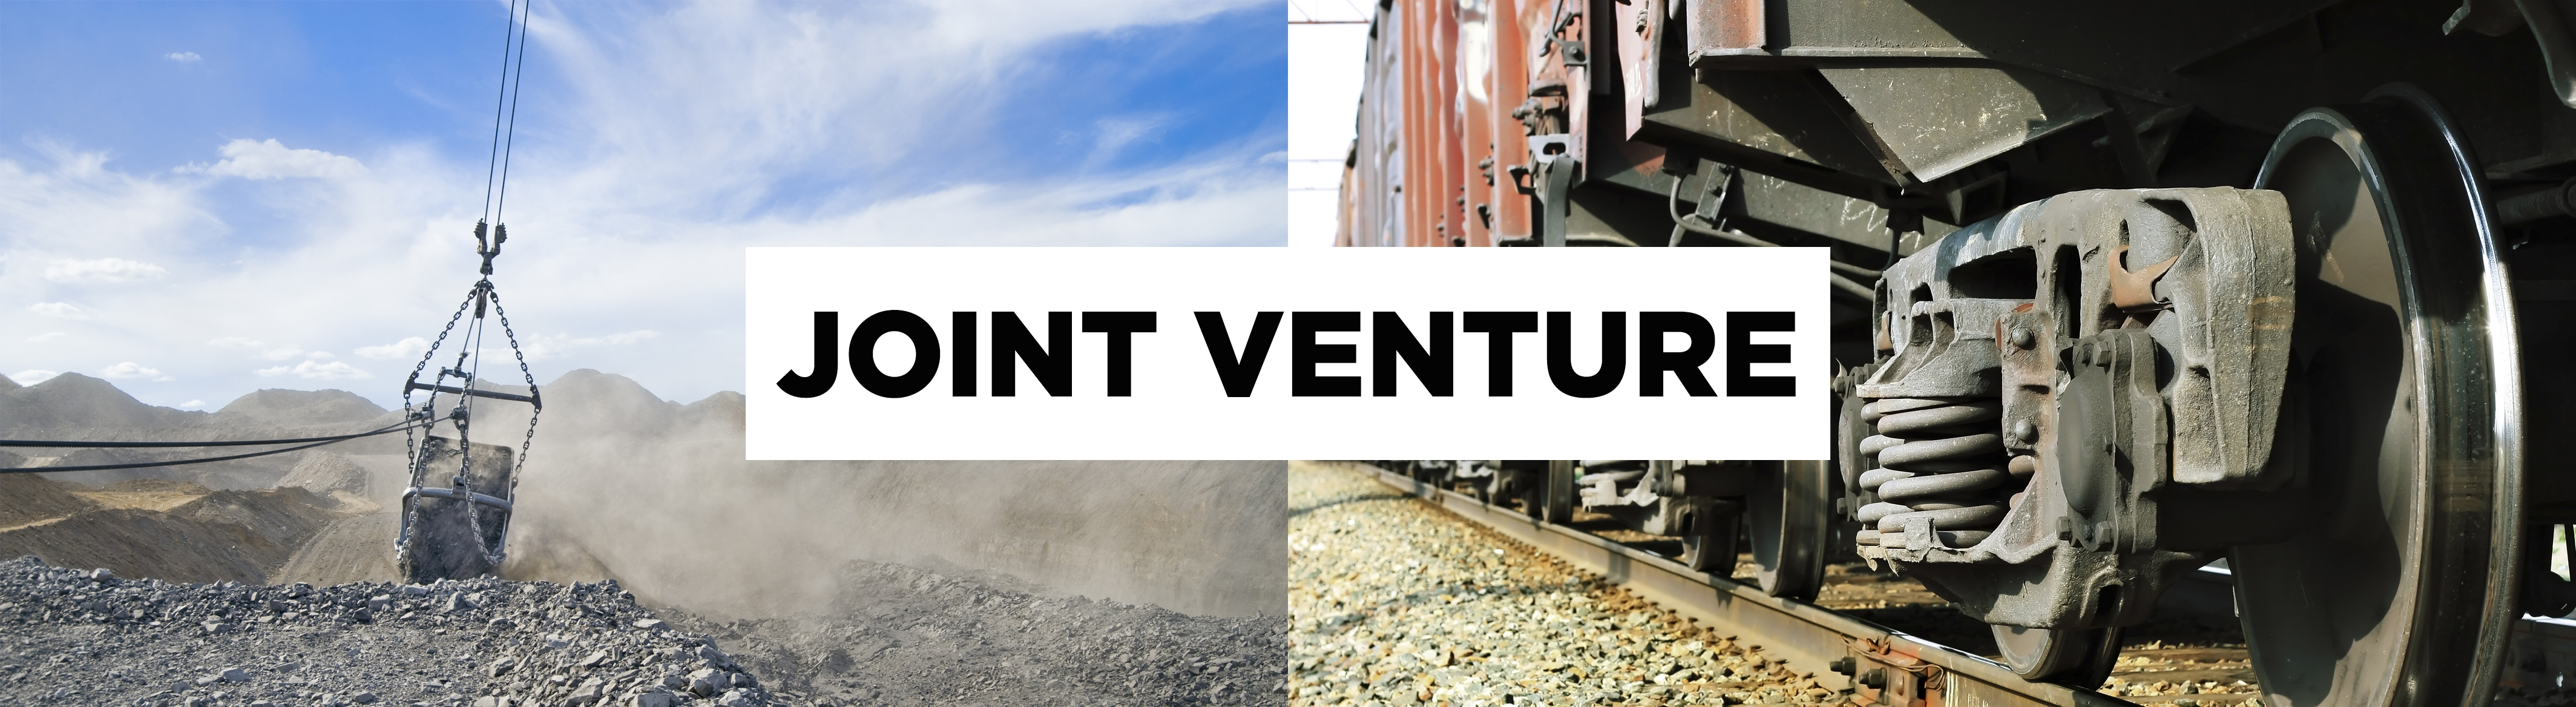 Whitmore and Shell Lubricants Announce Definitive Agreement to Form Joint Venture to Provide Industrial Products and Services to North America Rail and United States Mining Customers